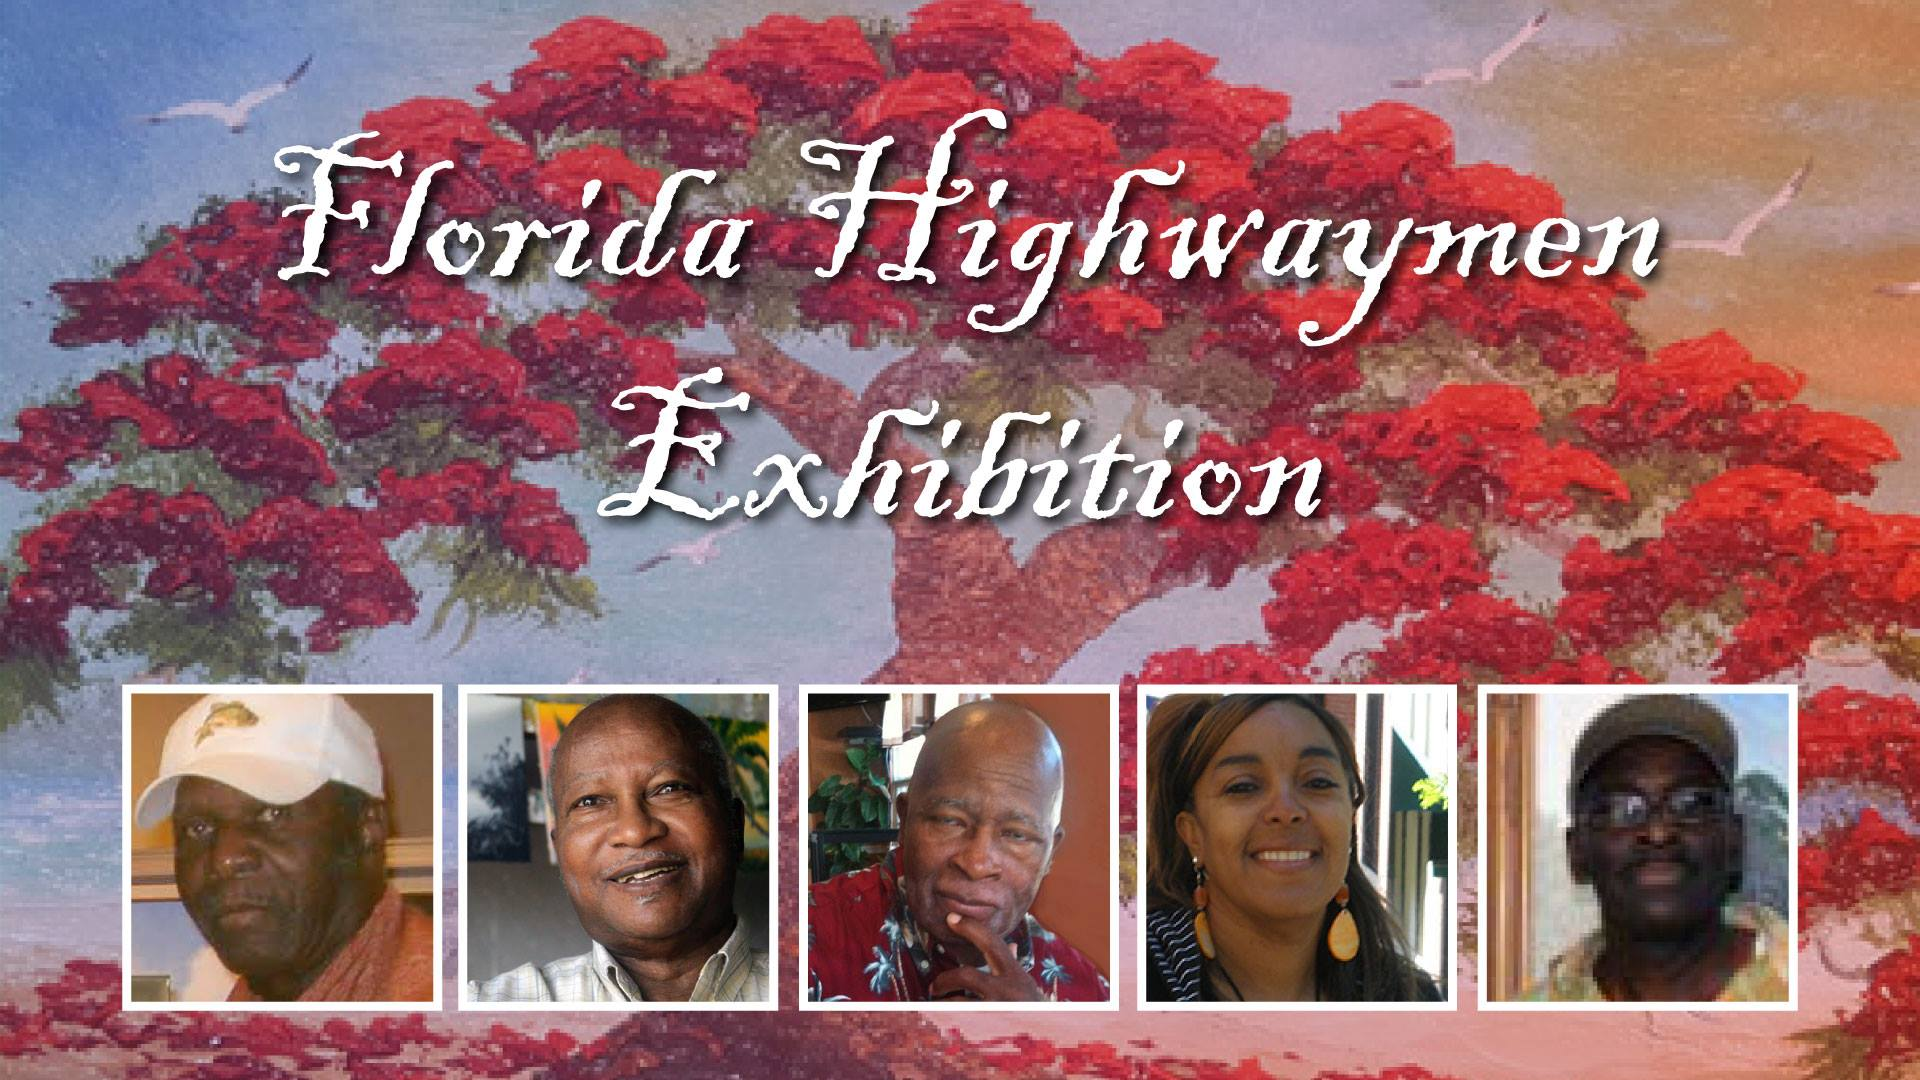 Florida's Original and 2nd Generation Highwaymen Artists